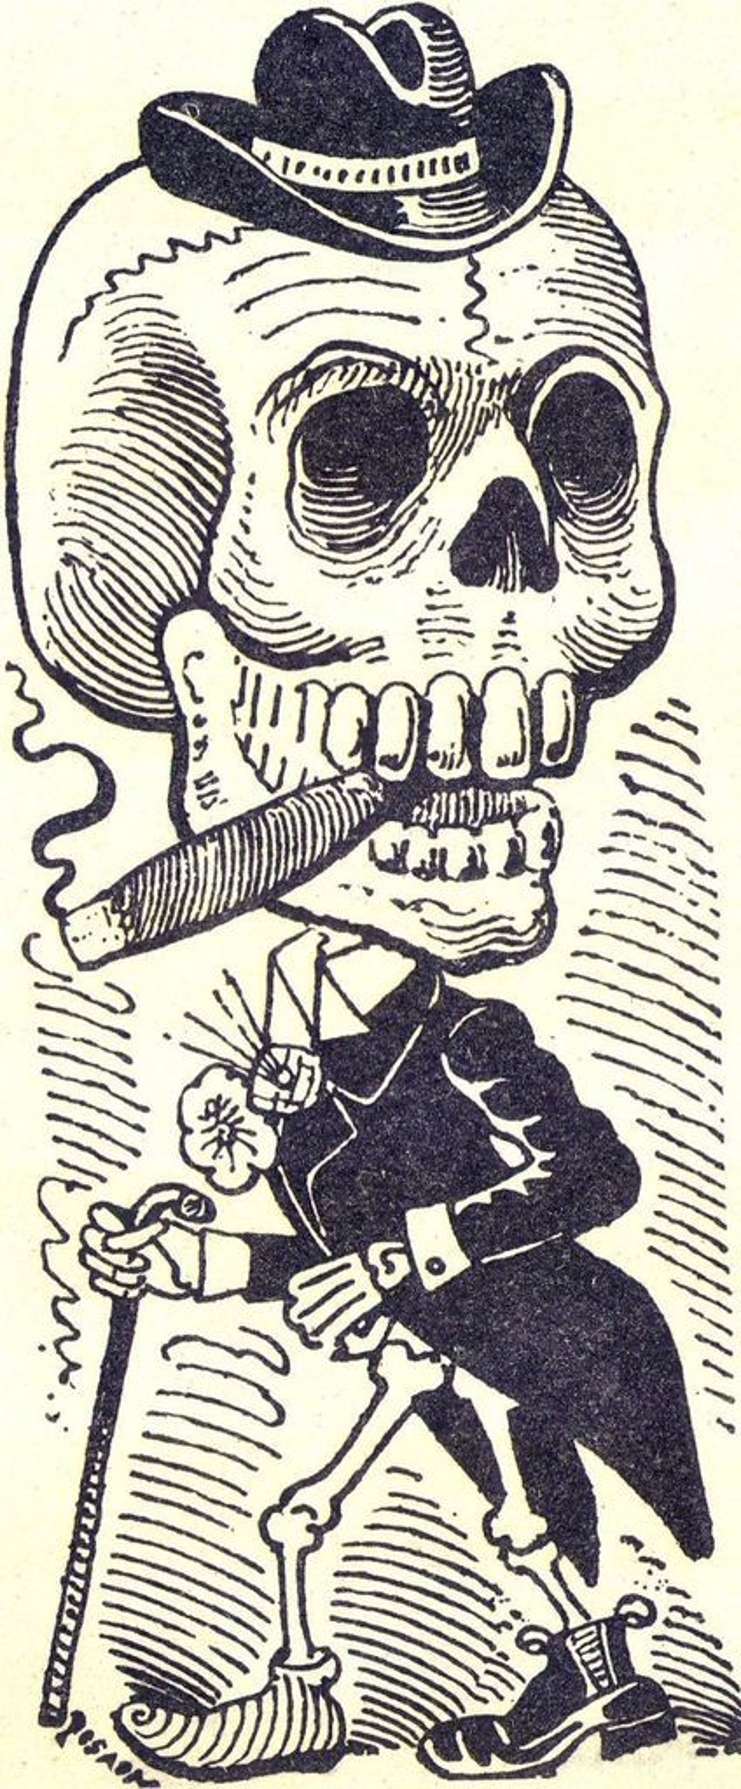 Lithograph of José Guadalupe Posada